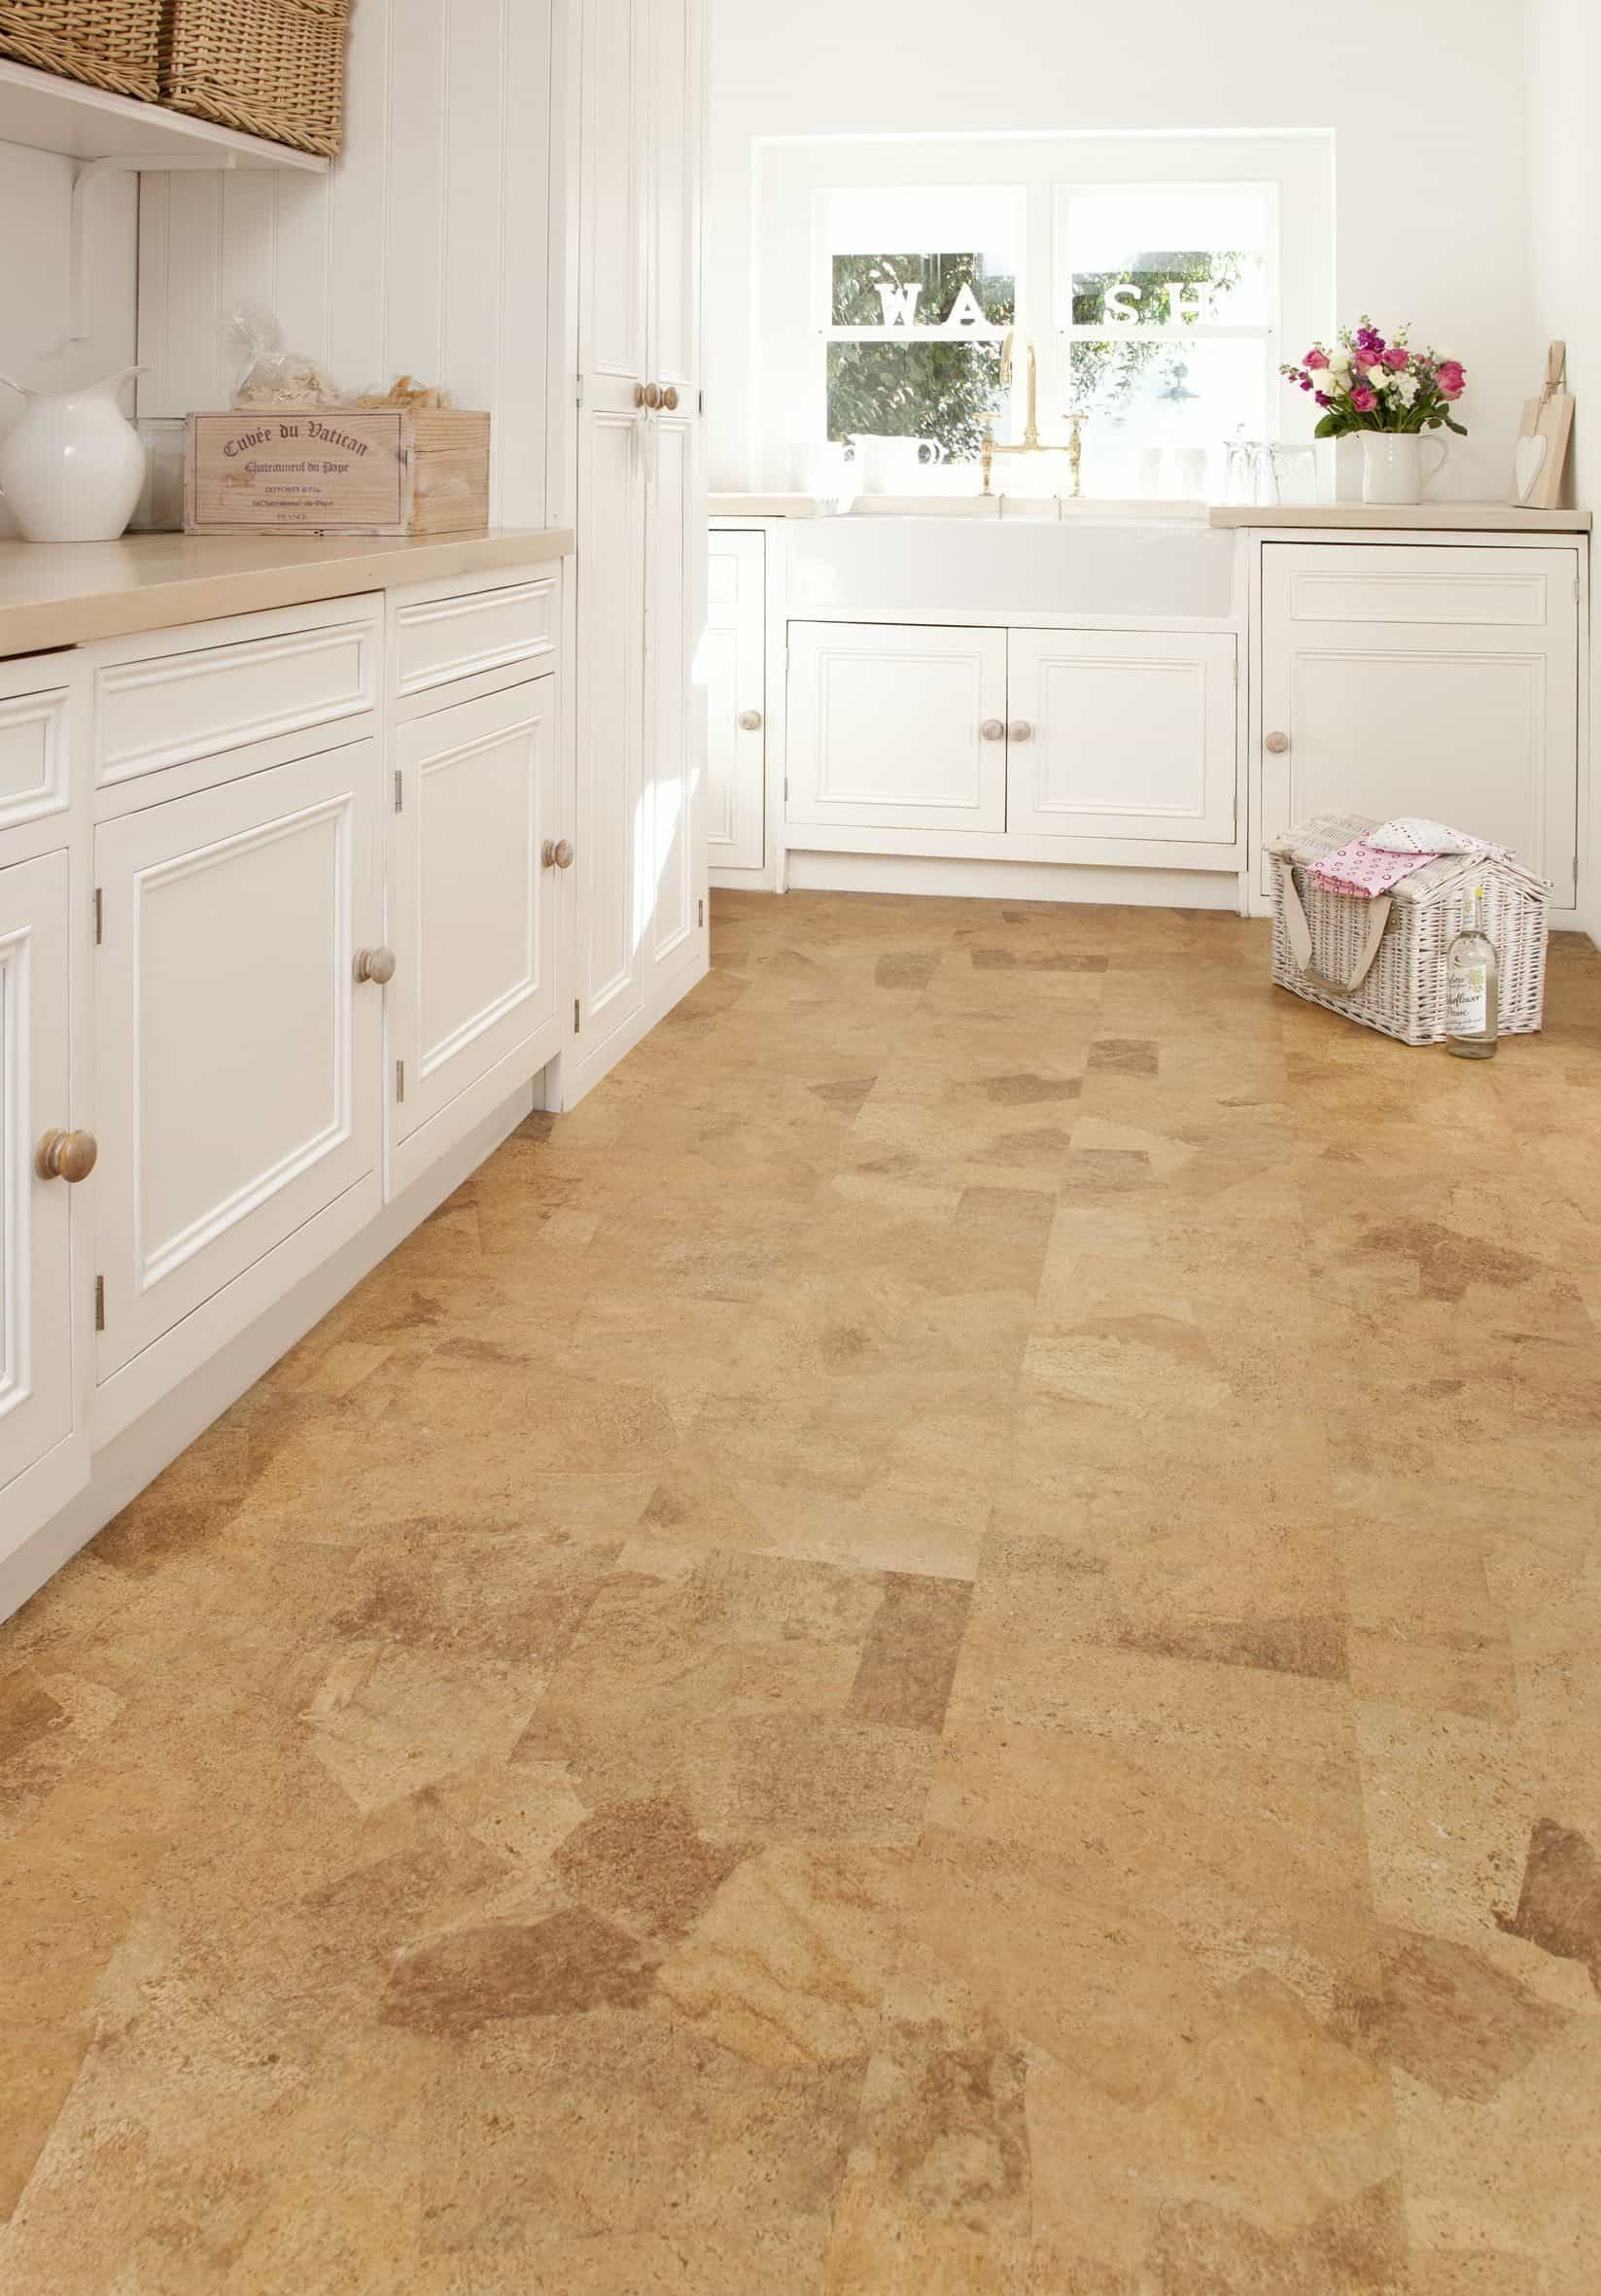 Cork Kitchen Flooring Is Perfect For Your Kitchen Cork Flooring Kitchen Modern Kitchen Tile Floor Kitchen Floor Tile Patterns